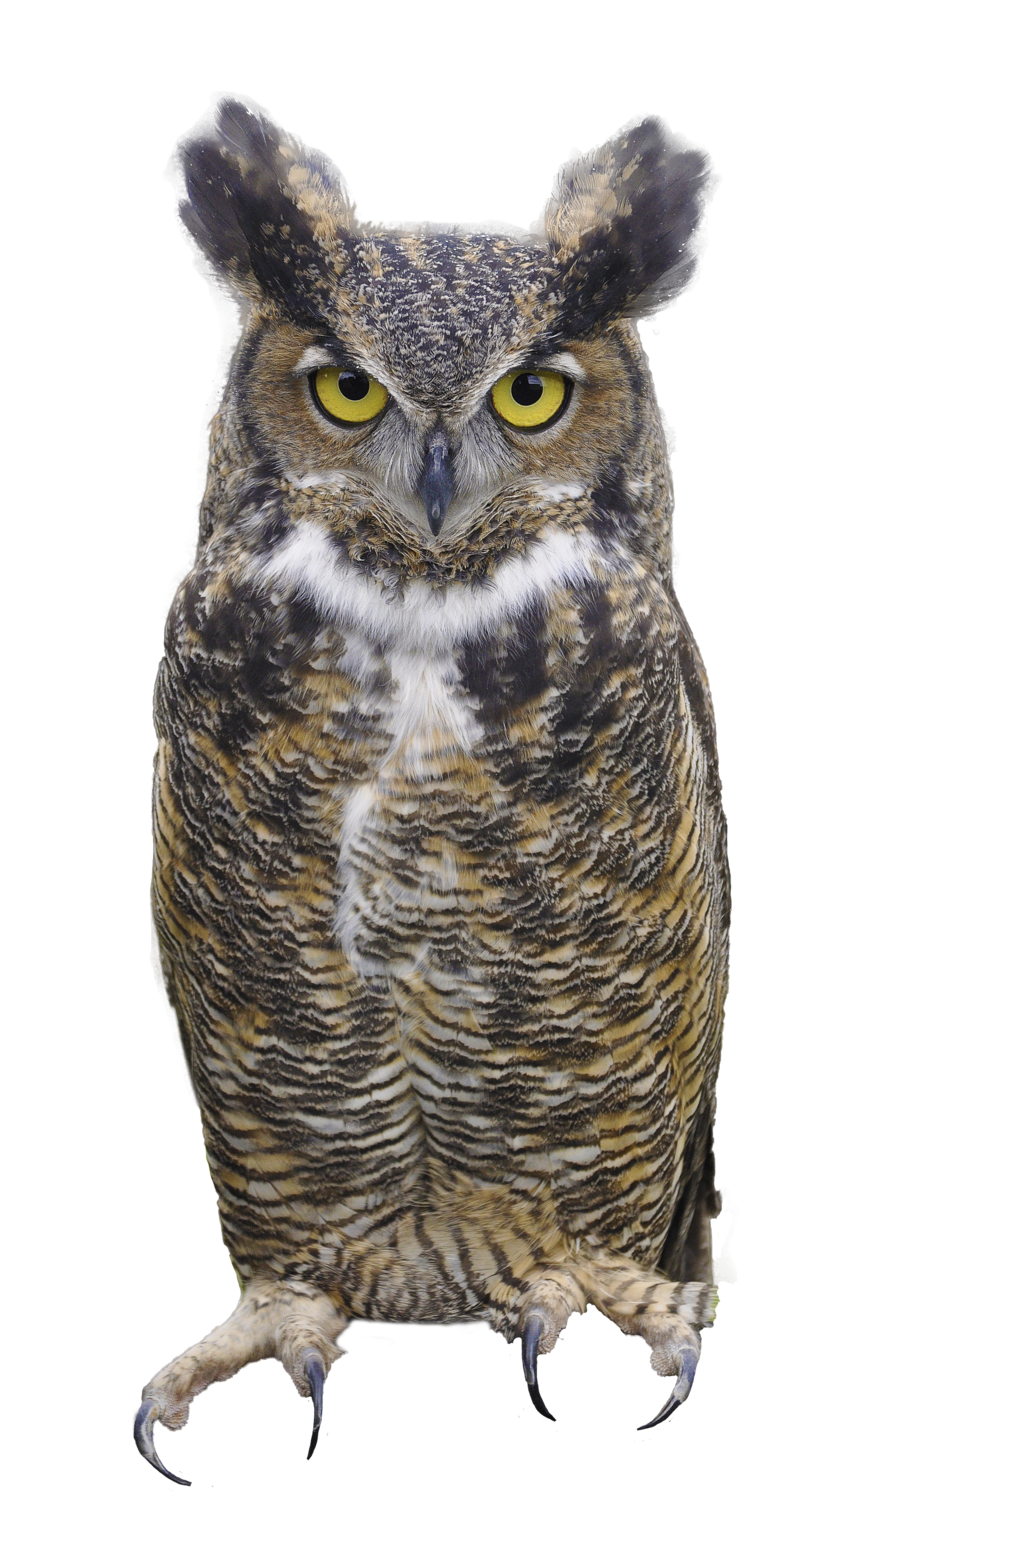 Owl Picture PNG Image - Images Owls PNG HD